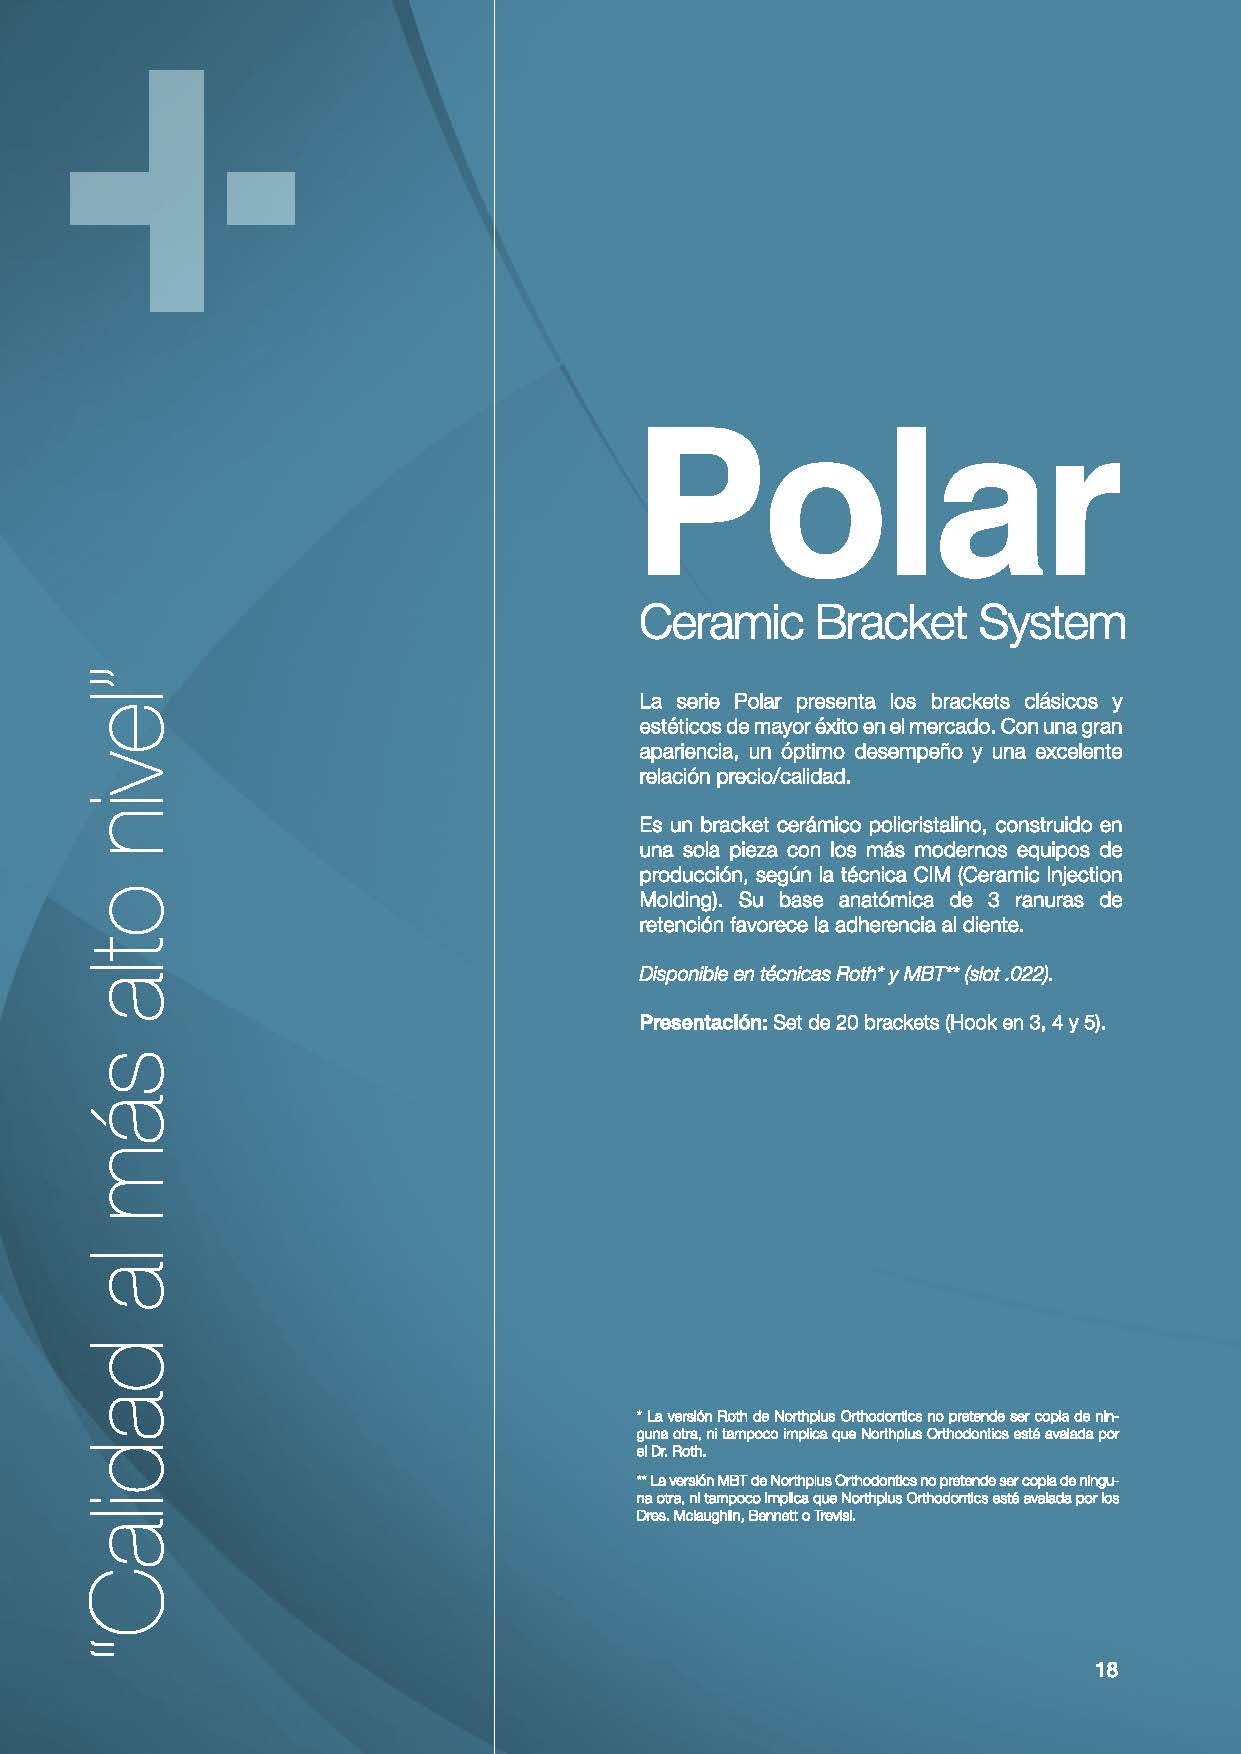 POLAR NORTHPLUS ORTHODONTICS